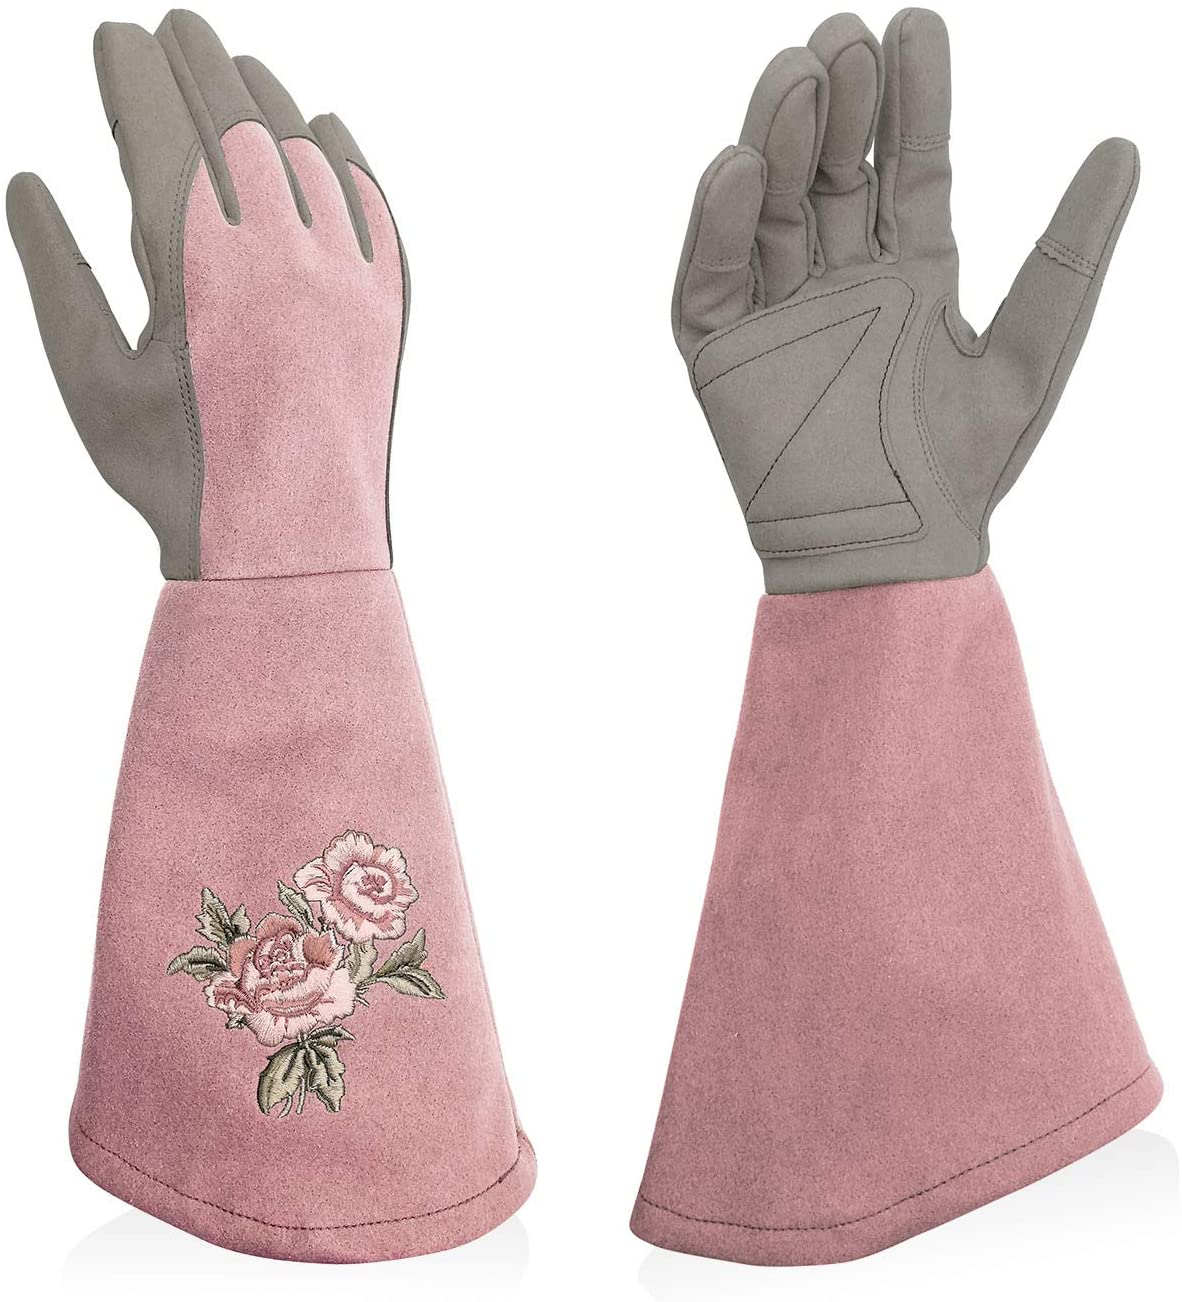 Intra-FIT Rose Embroidery Pruning Gloves Gardening Gloves with Extra Long Forearm Protection for Women and Men Purple Magenta Blue Olivegreen Lightblue Softpink Blushpink